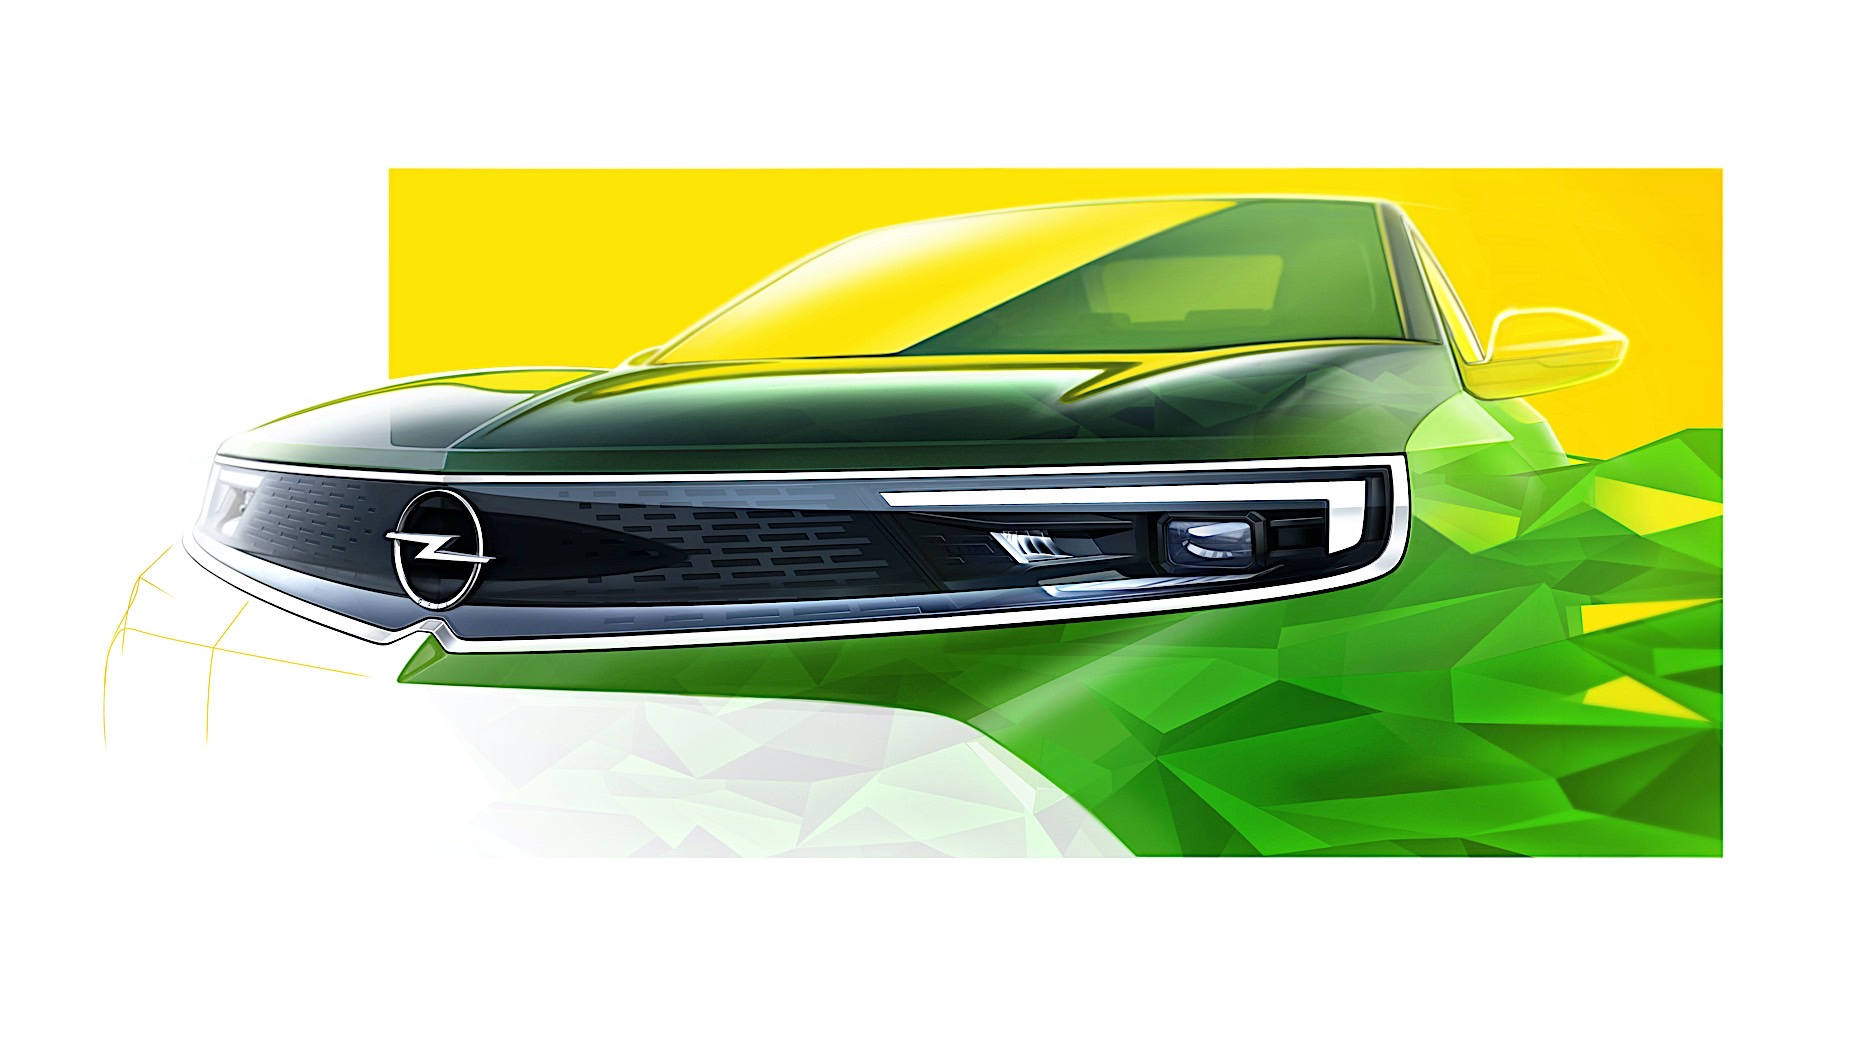 2021 opel mokka front end uncovered previews the face of